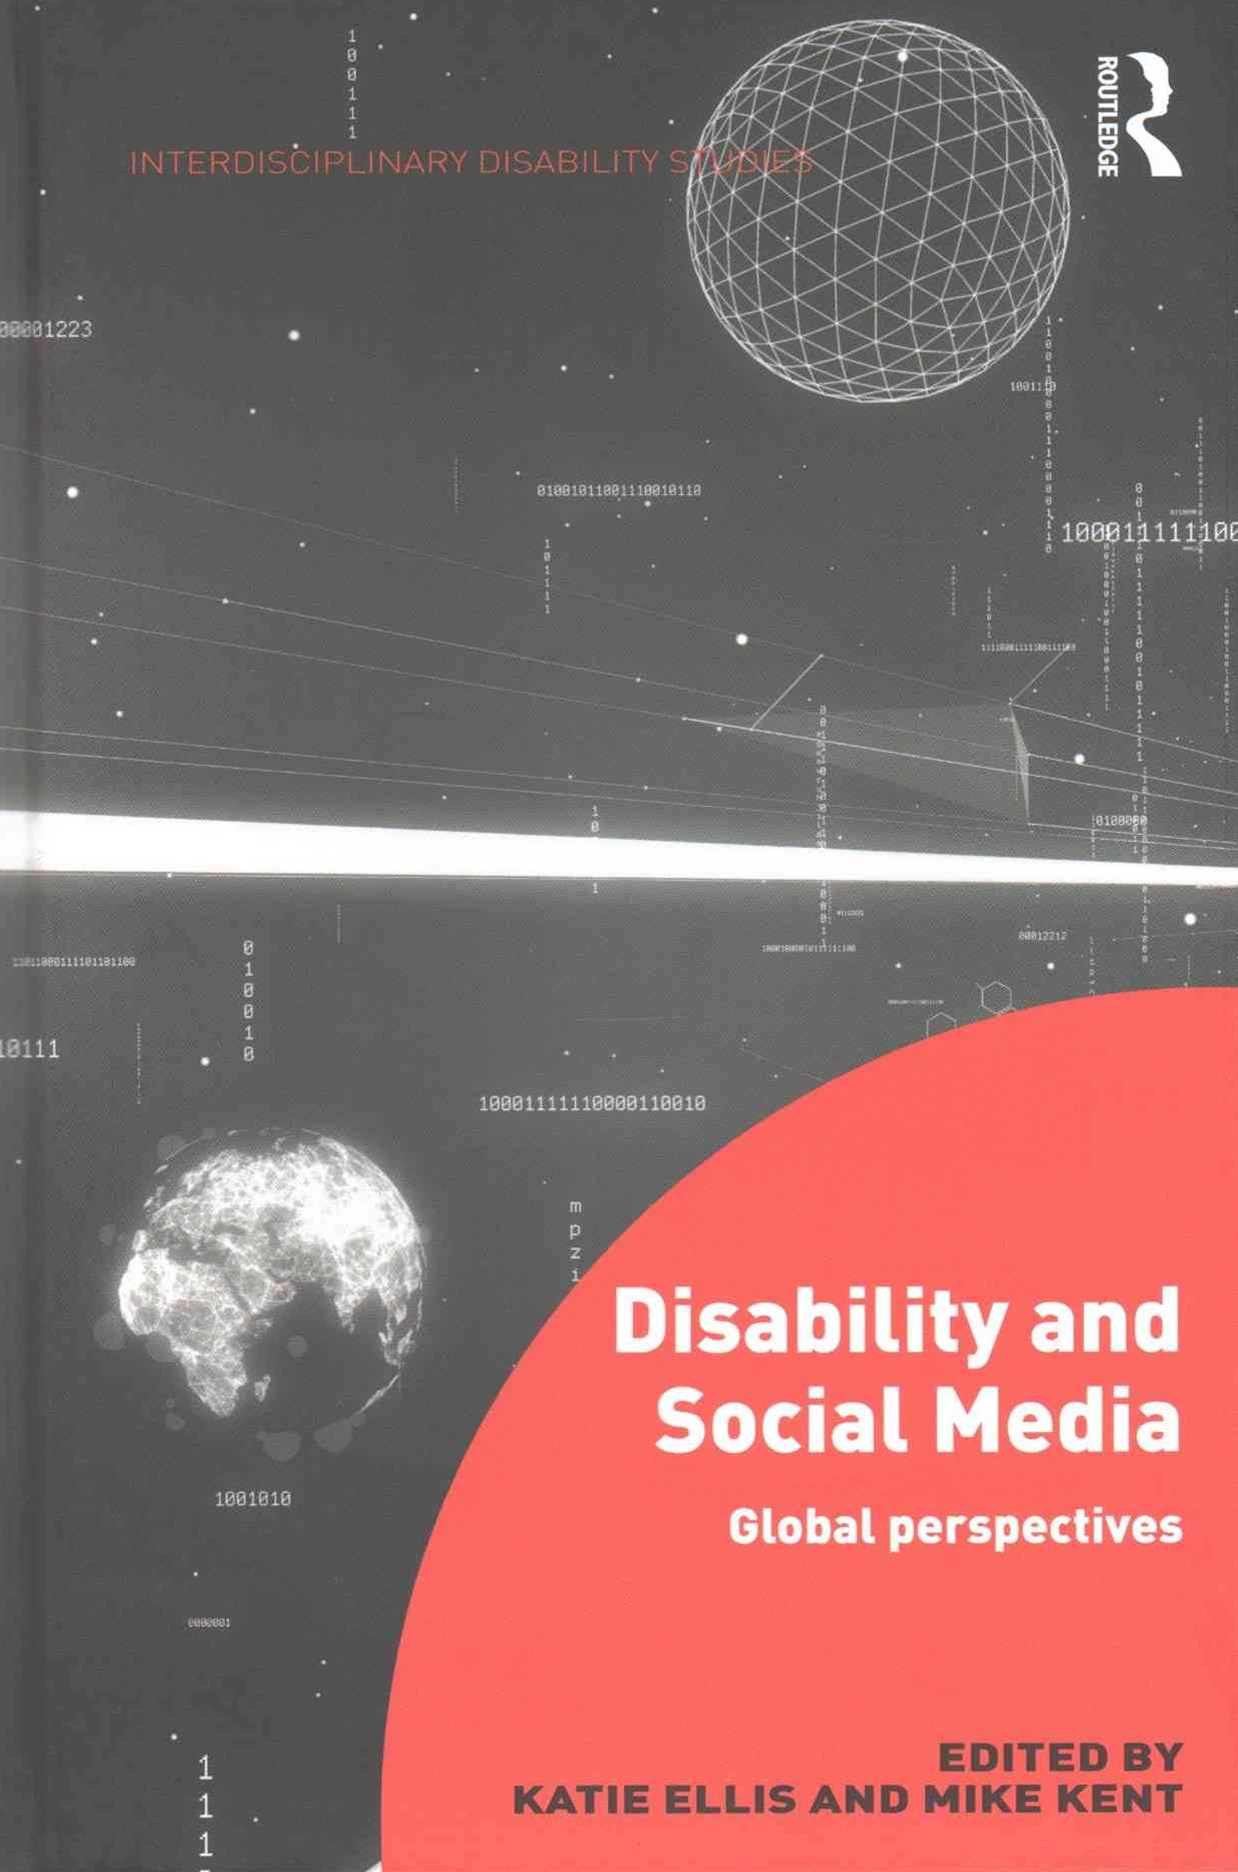 Disability and Social Media Global Perspectives